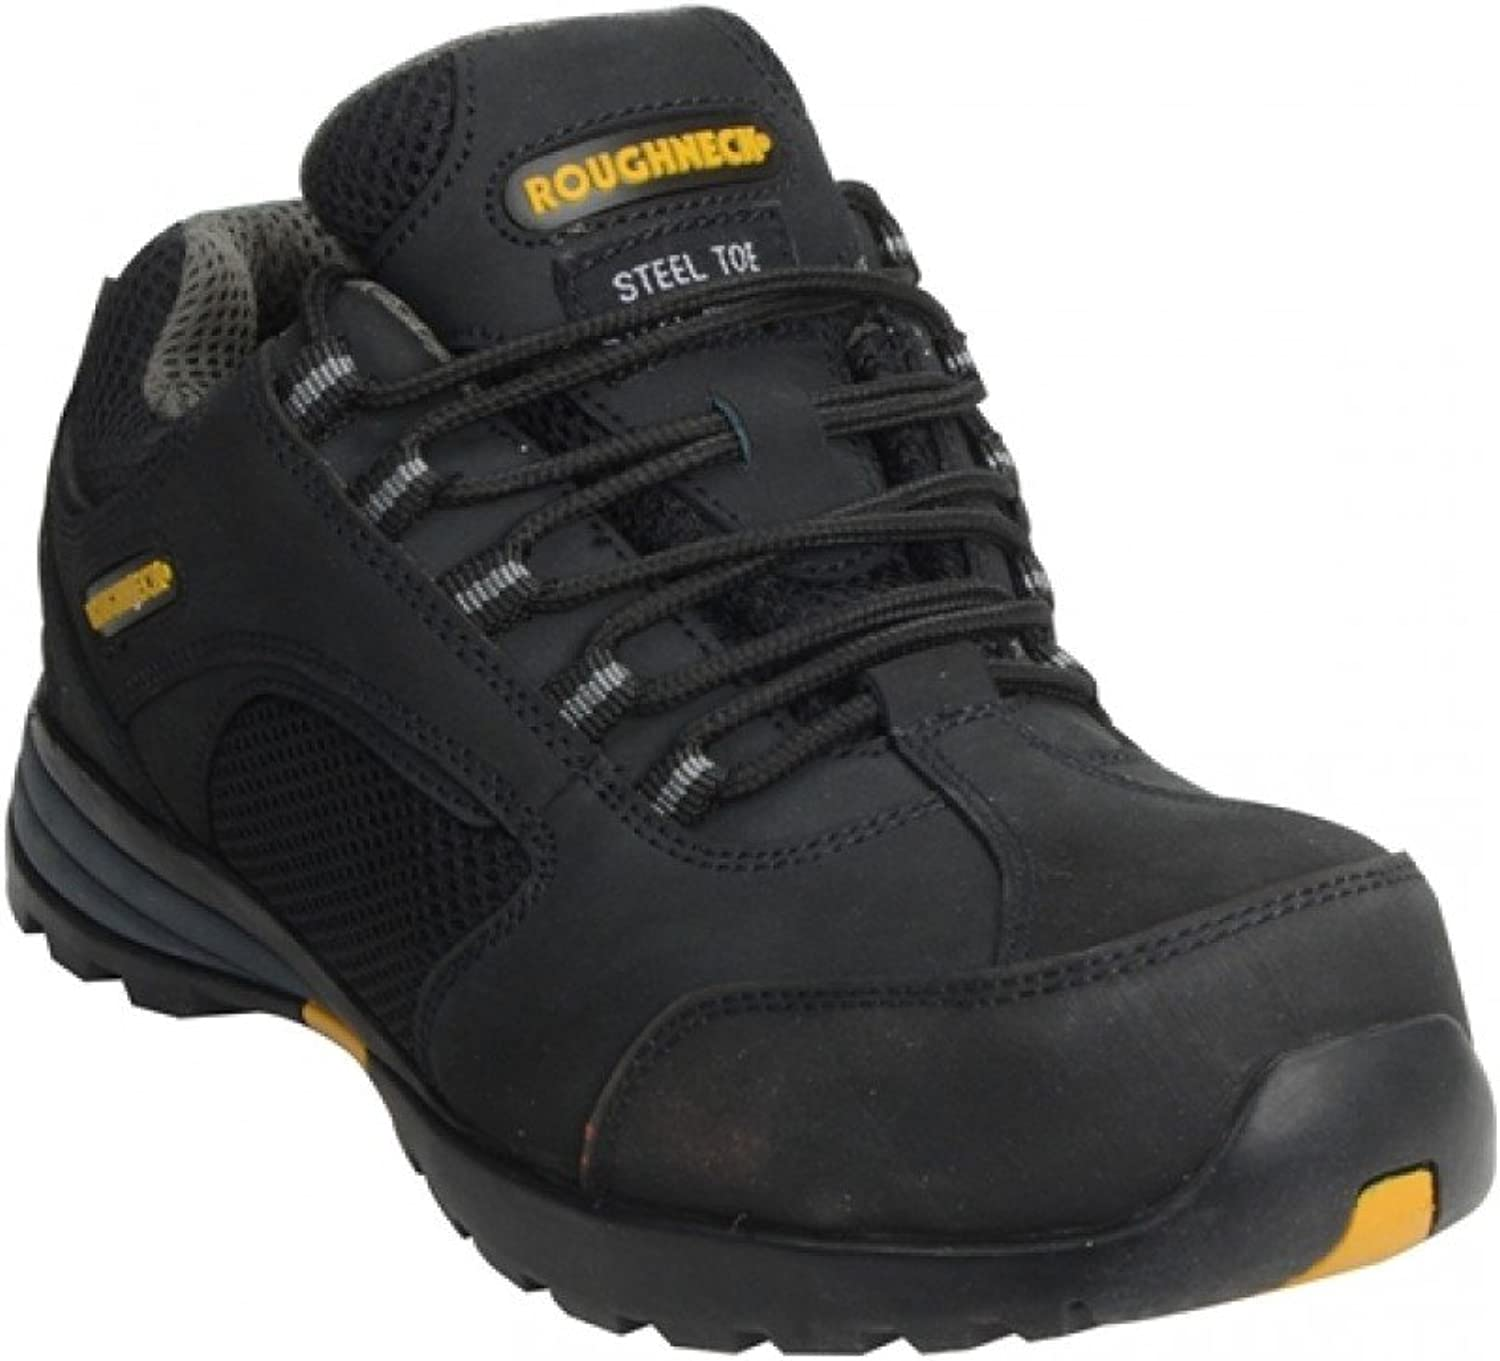 Roughneck Clothing Stealth Trainer Composite Midsole Size 9